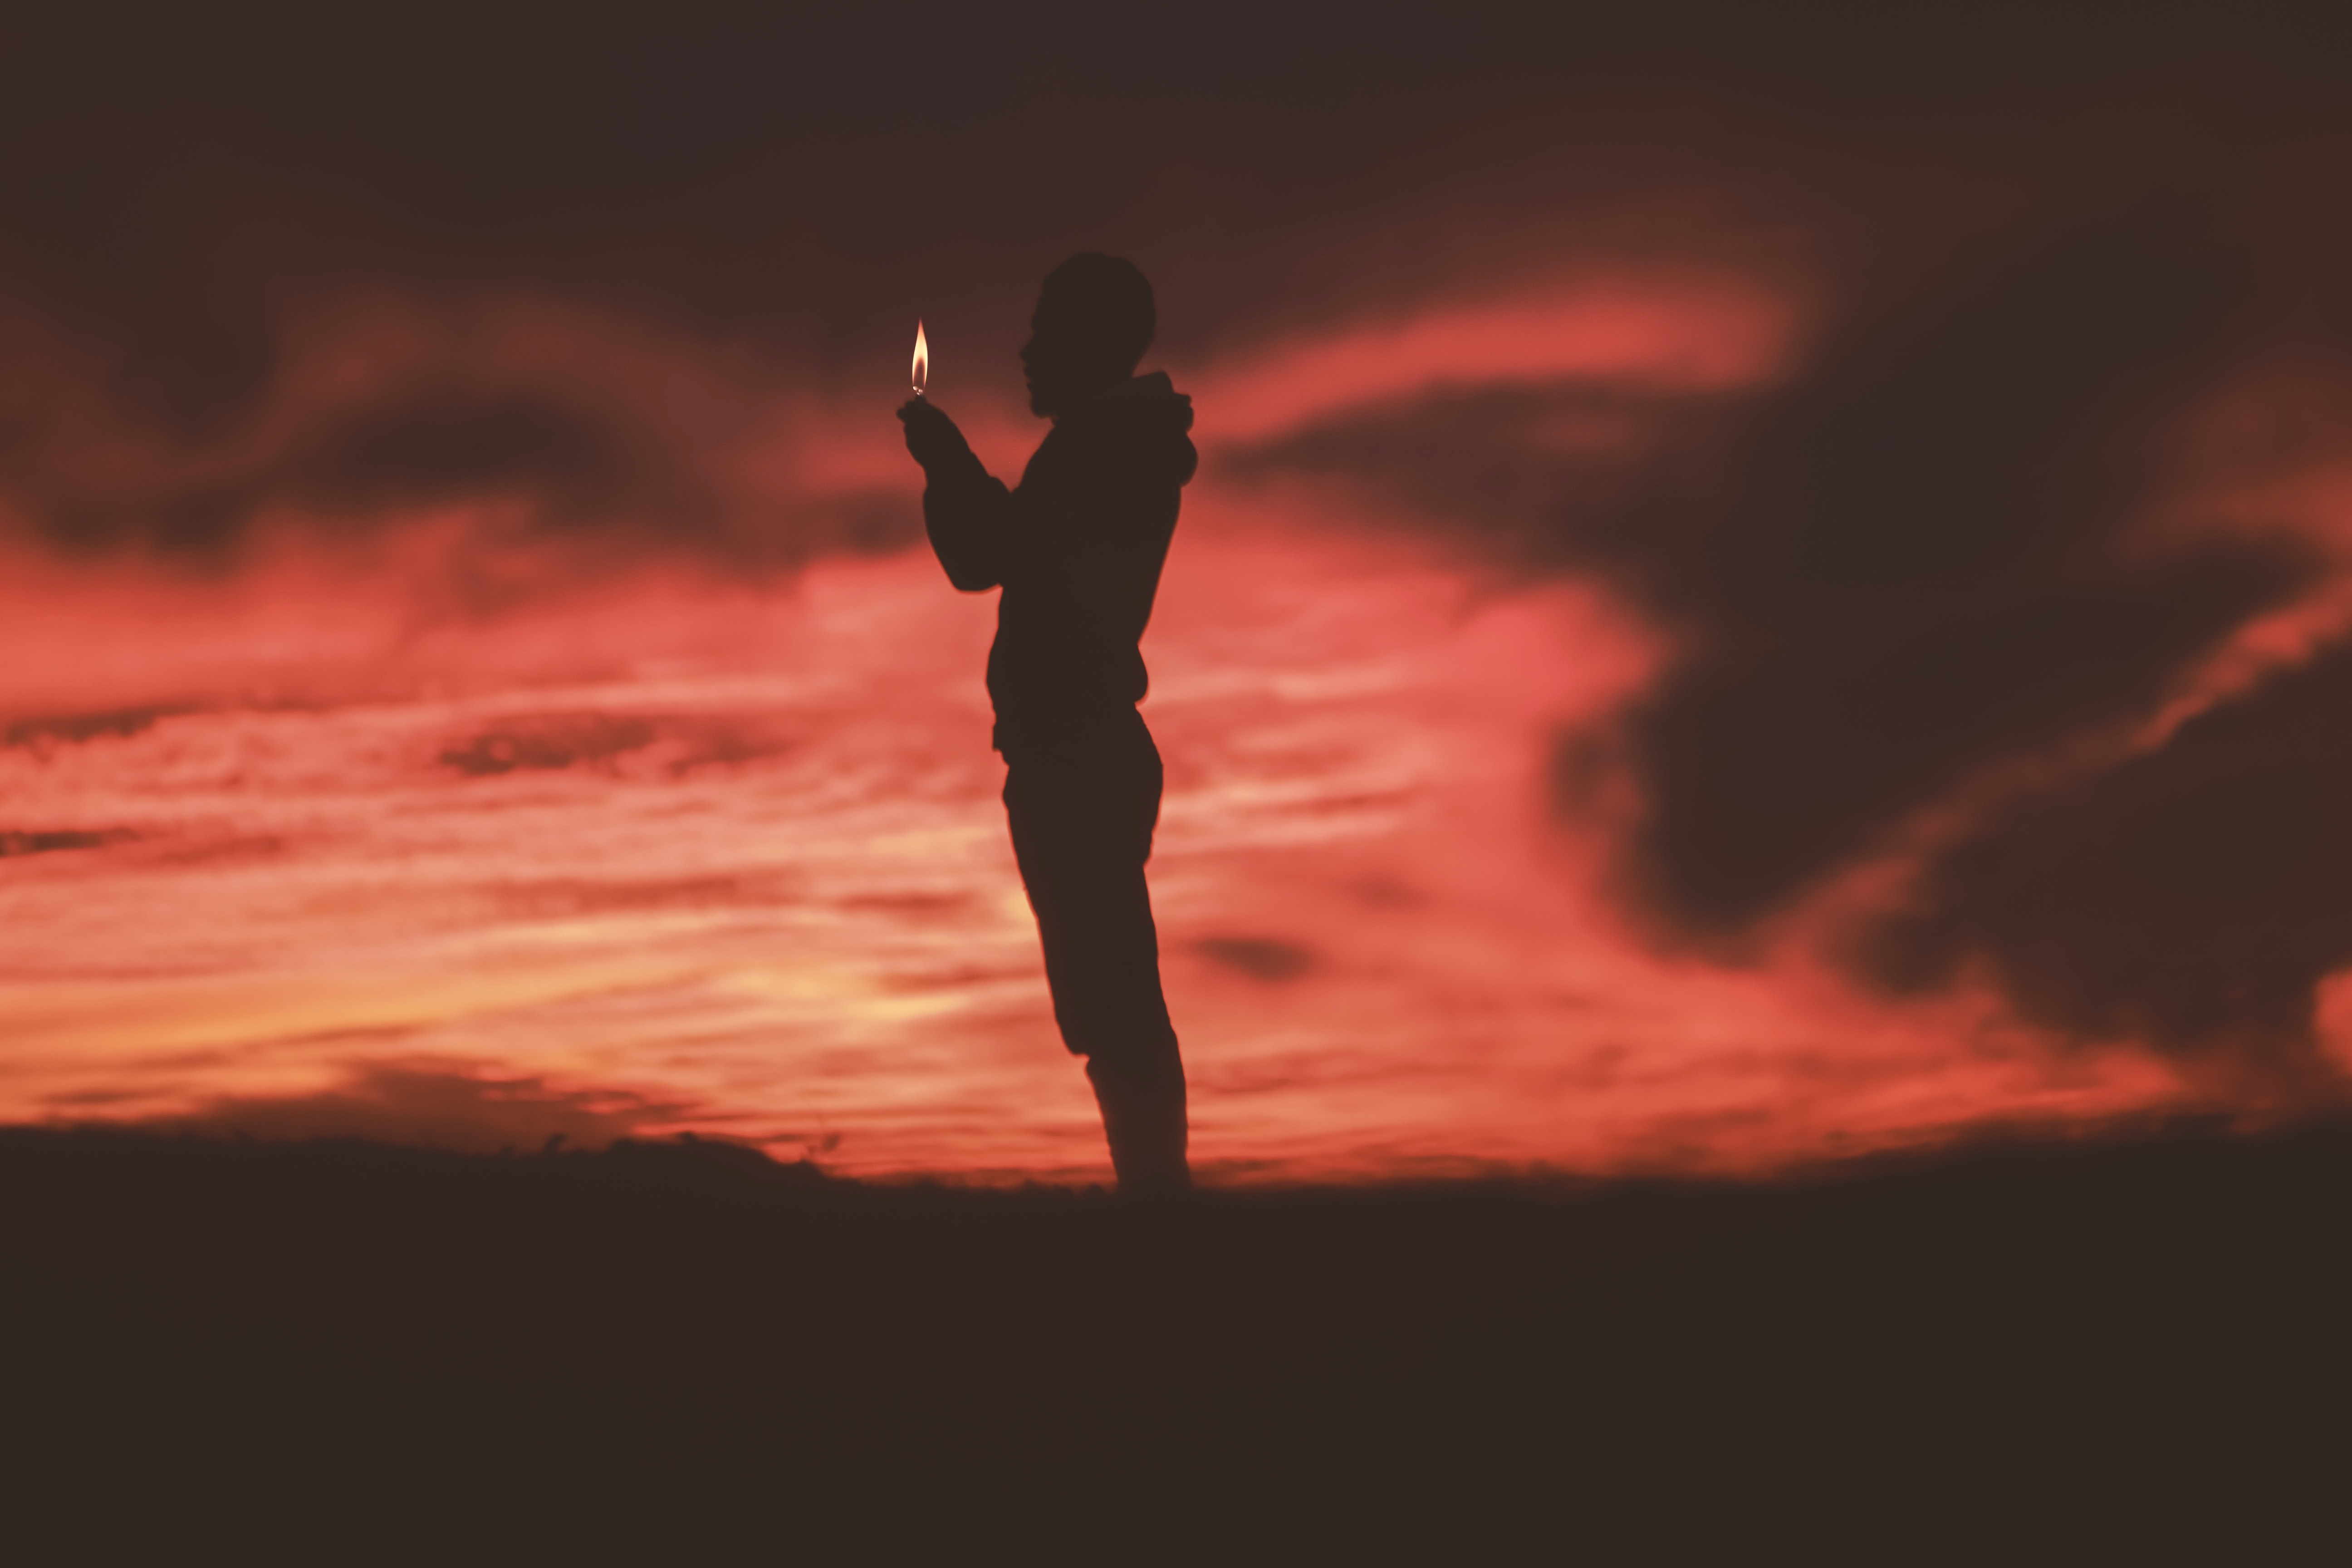 silhouette of man holding lighter